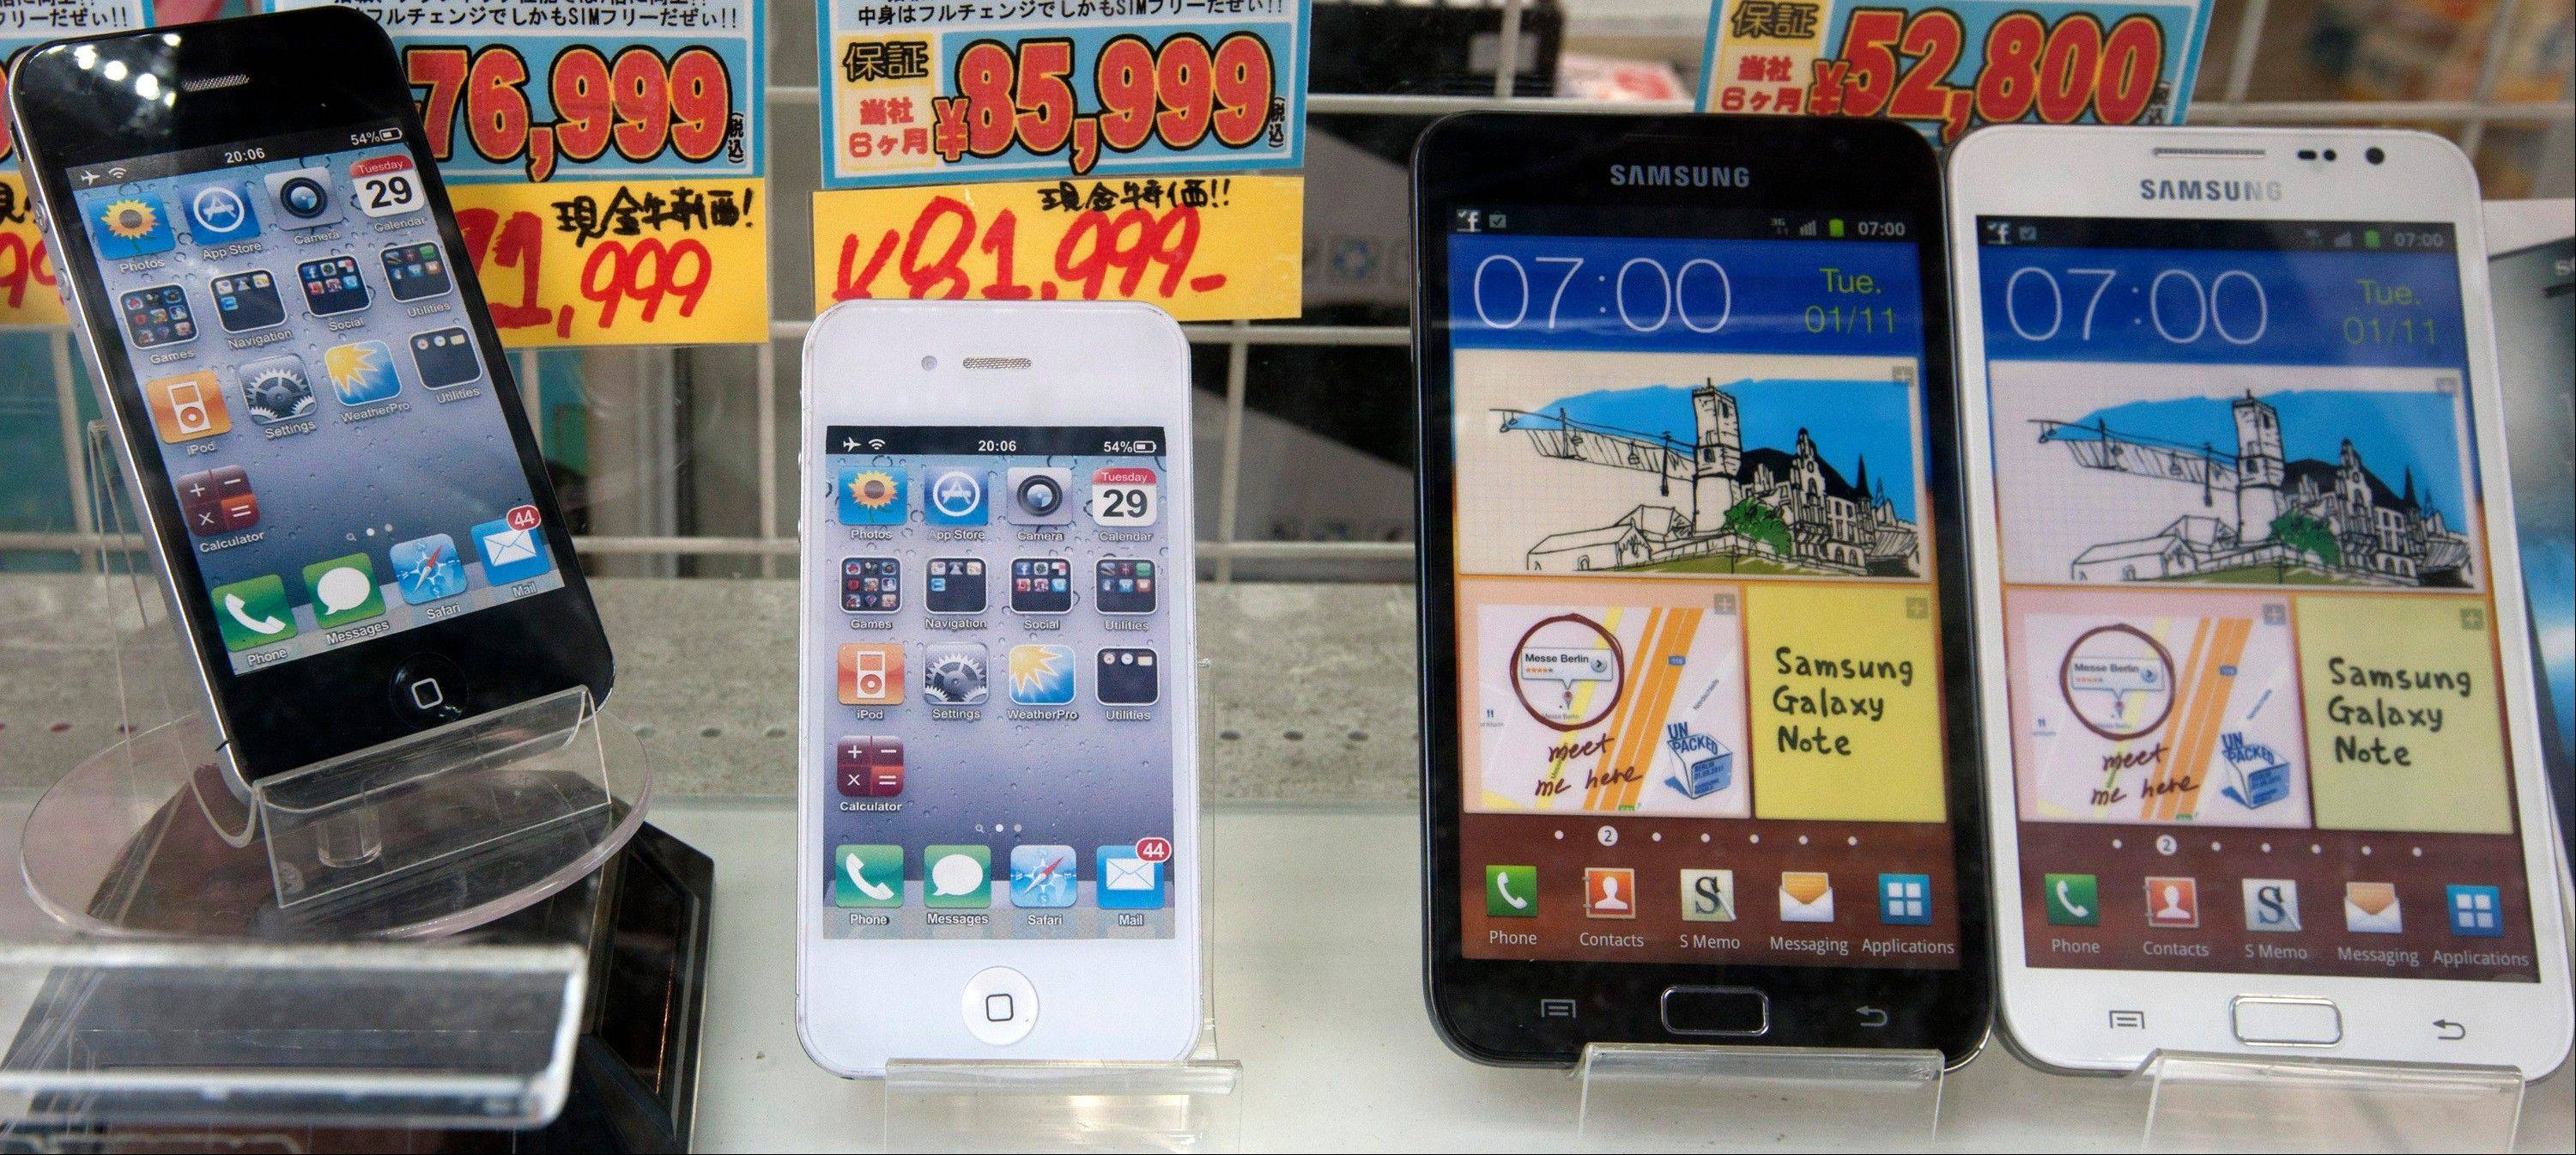 Apple Inc. iPhones, left, and Samsung Electronics Co. Galaxy smartphones are displayed at an electronics store in Tokyo, Japan, on Tuesday, Aug. 28, 2012. Apple Inc. lost a patent lawsuit in Japan as a Tokyo judge ruled that Samsung Electronics Co. smartphones and a tablet computer didn't infringe on an Apple invention for synchronizing music and video data with servers.